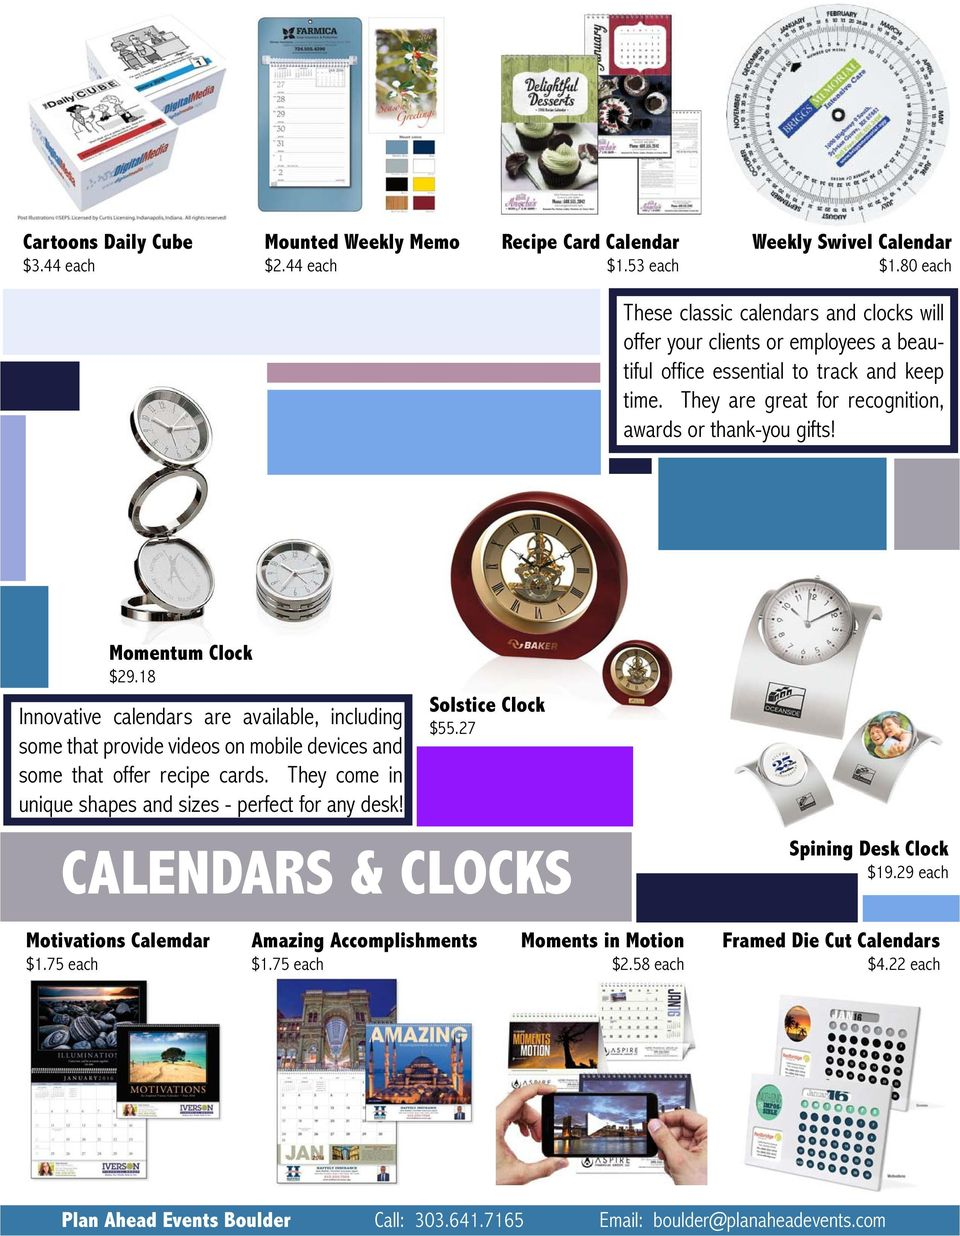 Momentum Clock $29.18 Innovative calendars are available, including some that provide videos on mobile devices and some that offer recipe cards.